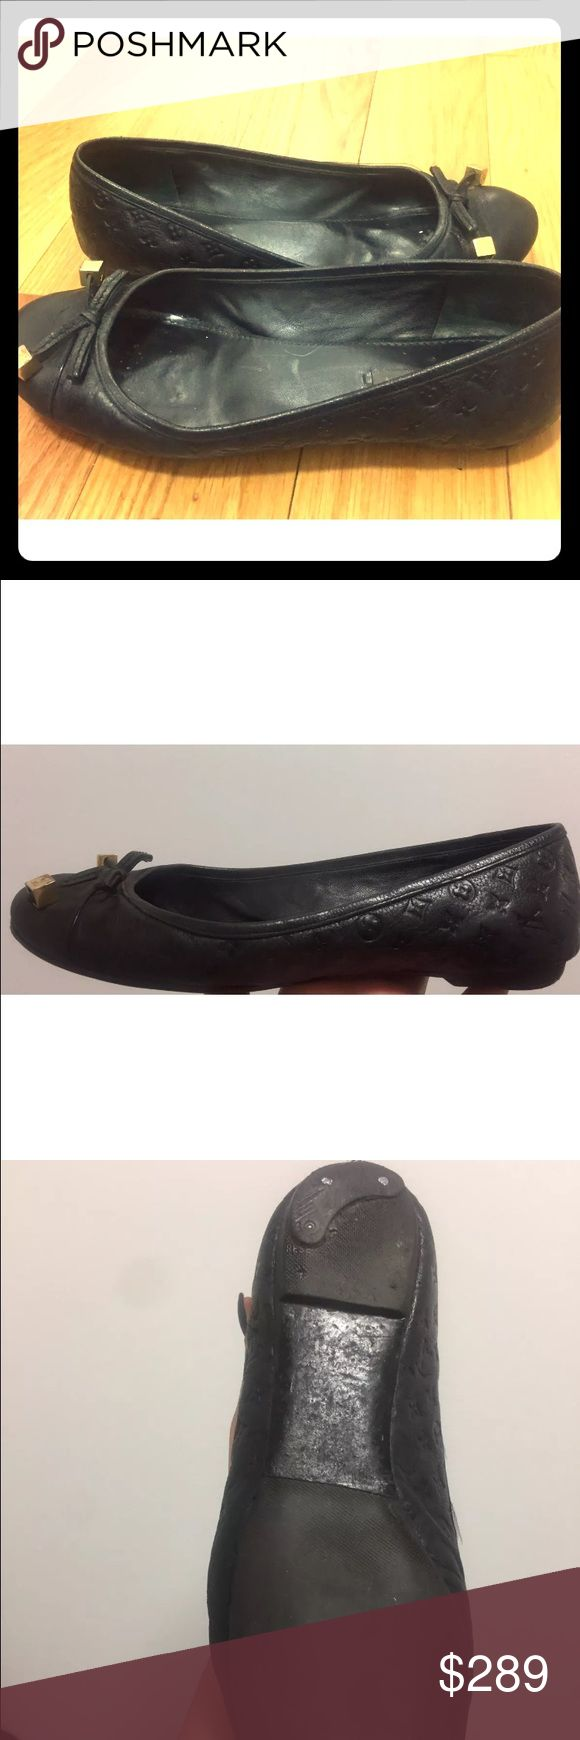 Louis Vuitton Monogram flare size 6/36 Louis Vuitton gorgeous ballerina flats. Resoled for durability. Size 6/36. In great condition Louis Vuitton Shoes Flats & Loafers